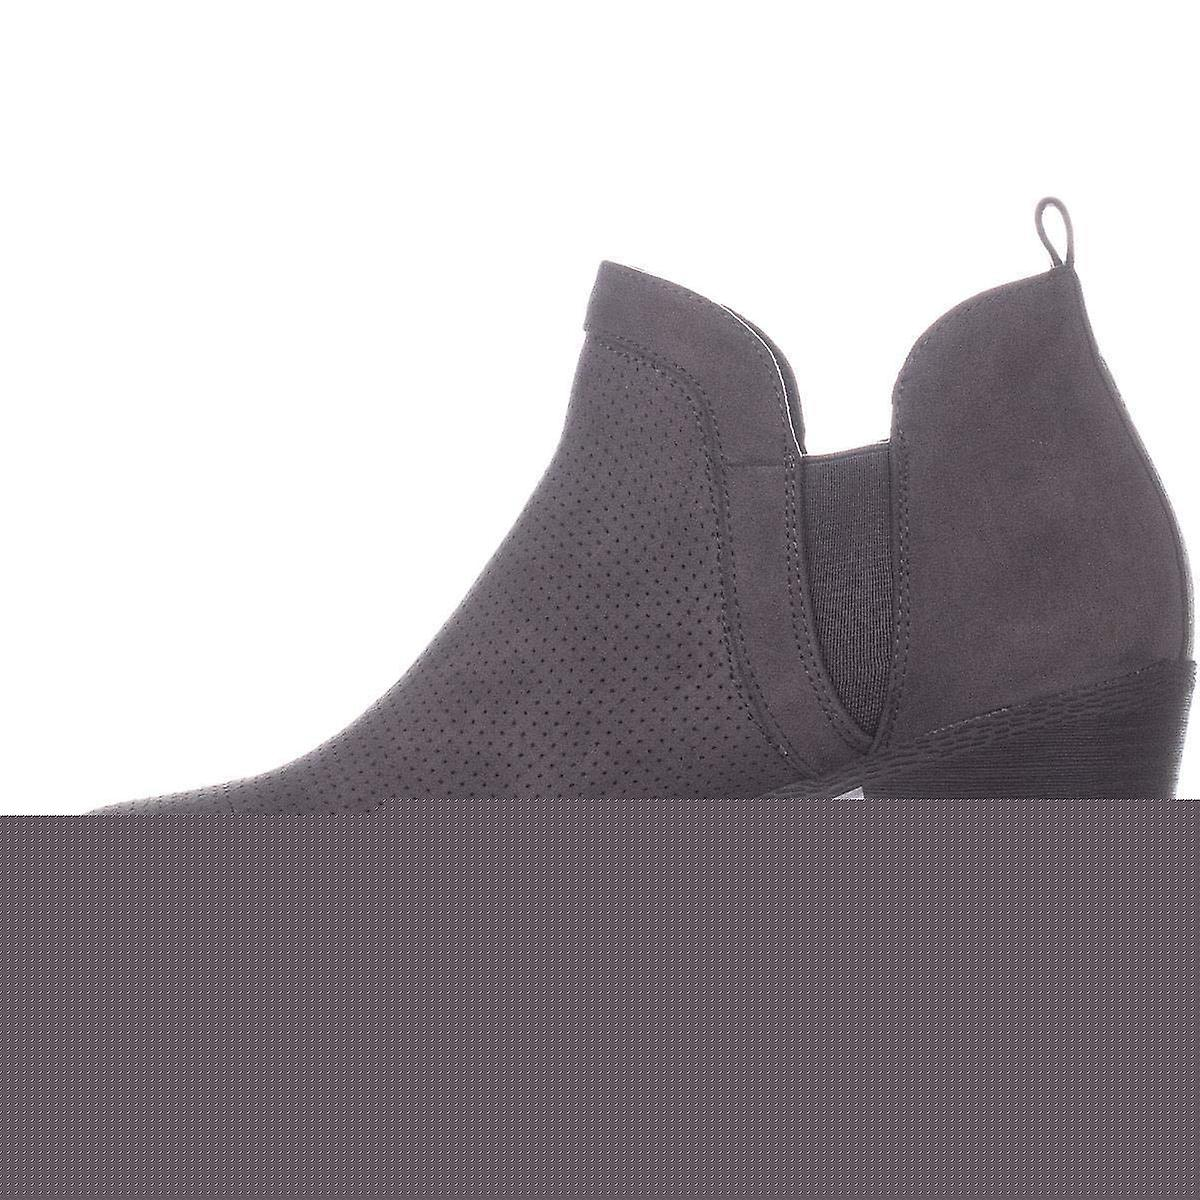 Style & Co. Womens Myrrah Pointed Toe Ankle Clog Boots